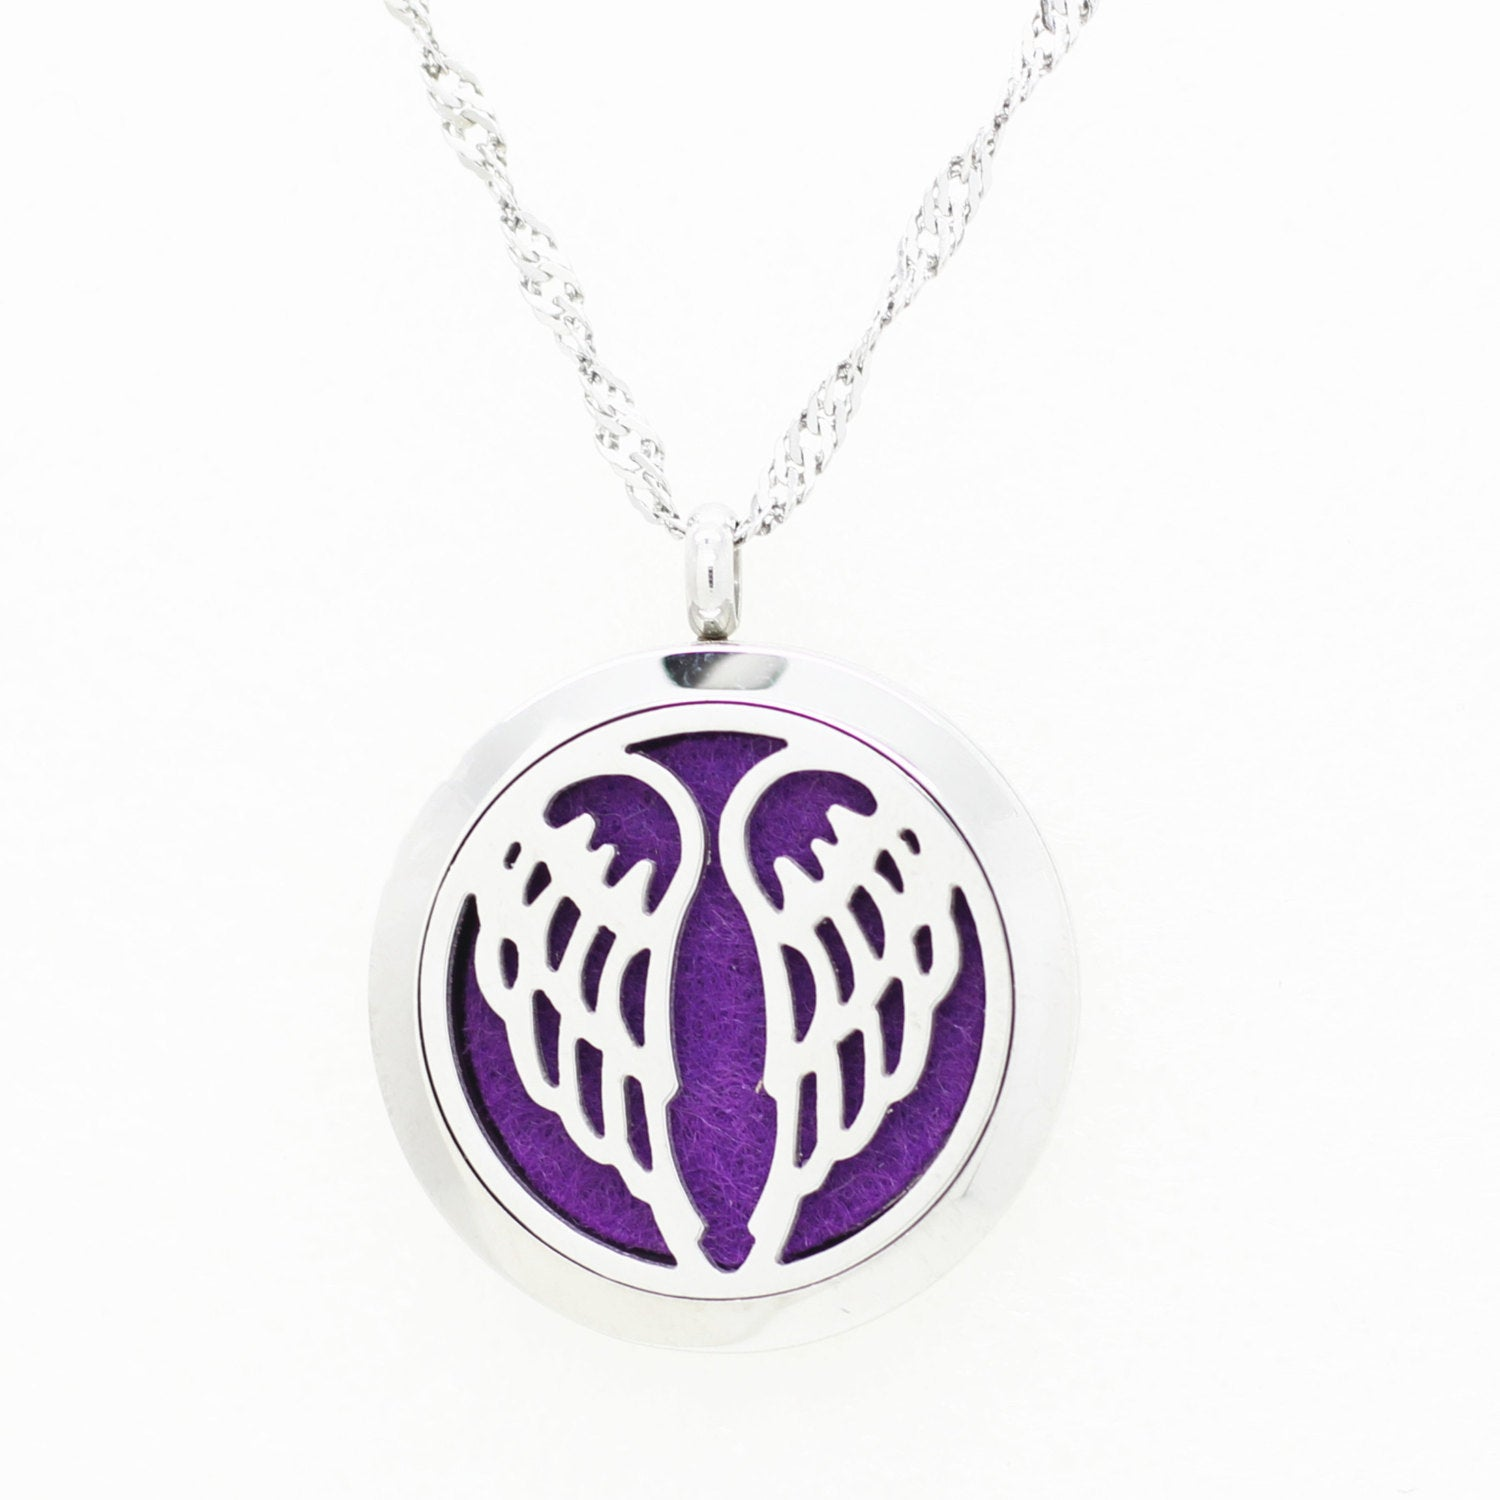 Love and Light Essence - Essential Oil Diffuser Necklace - Angel Wings